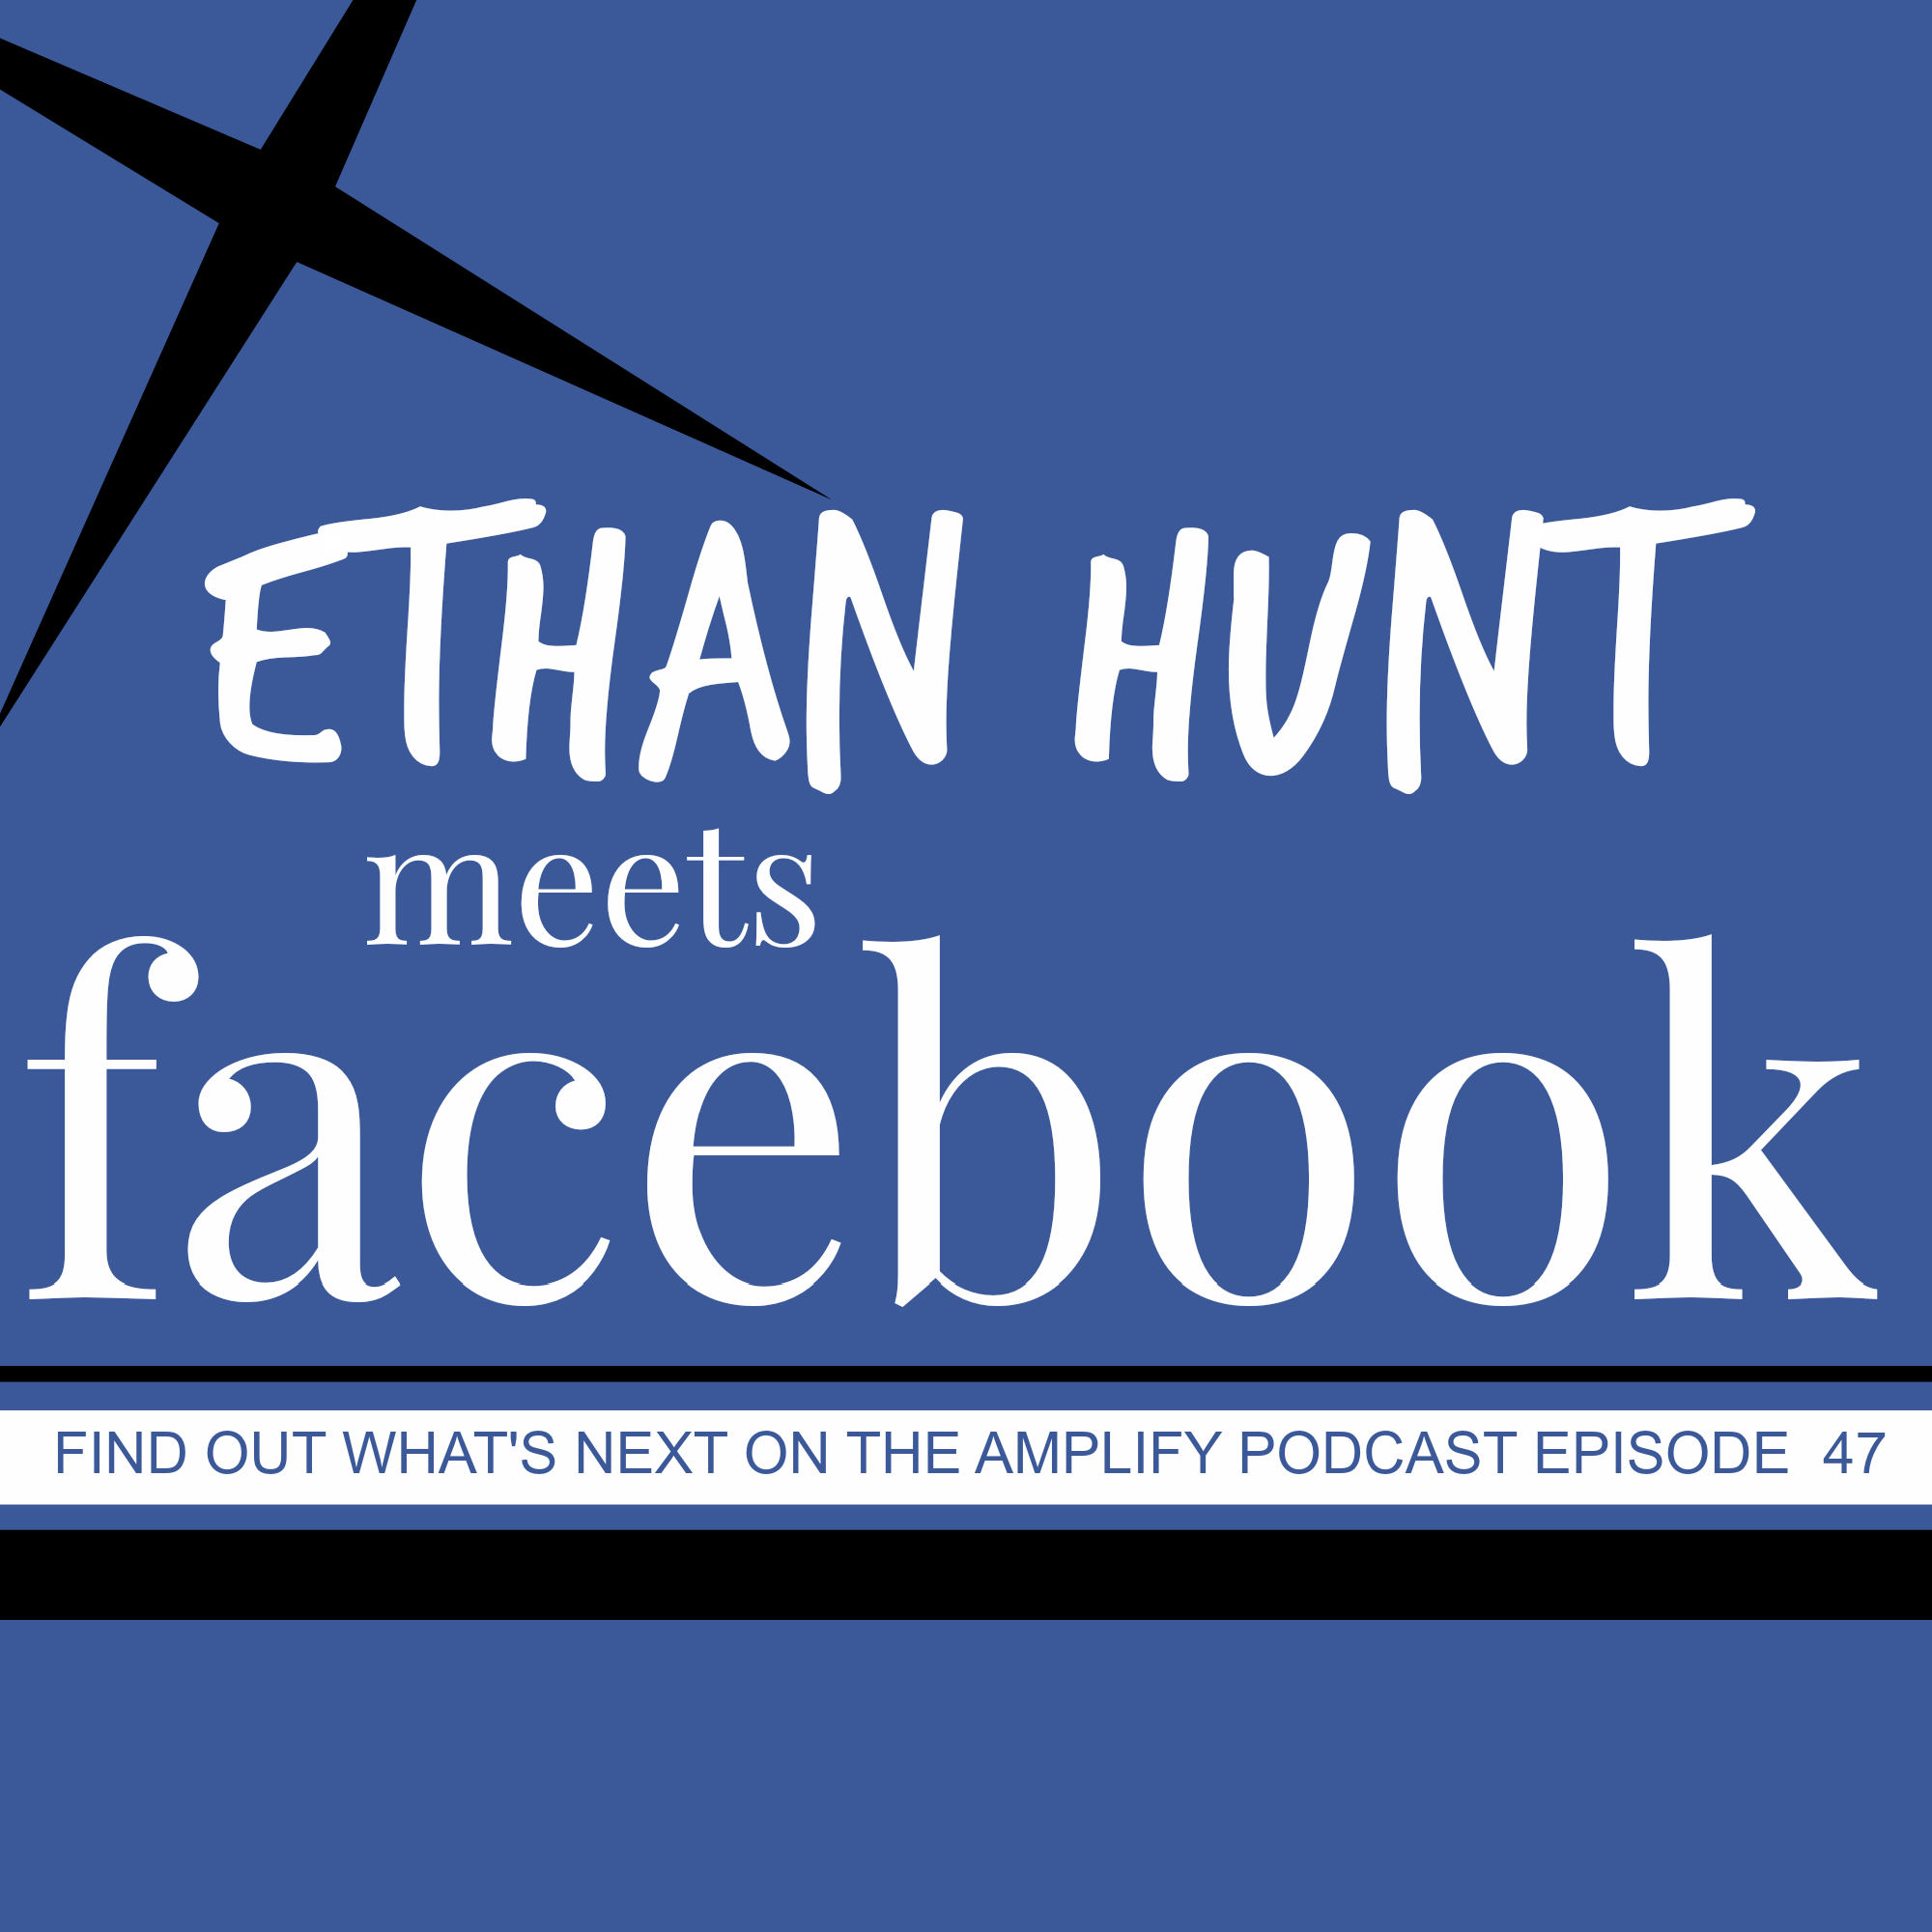 Ethan Hunt Meets Facebook